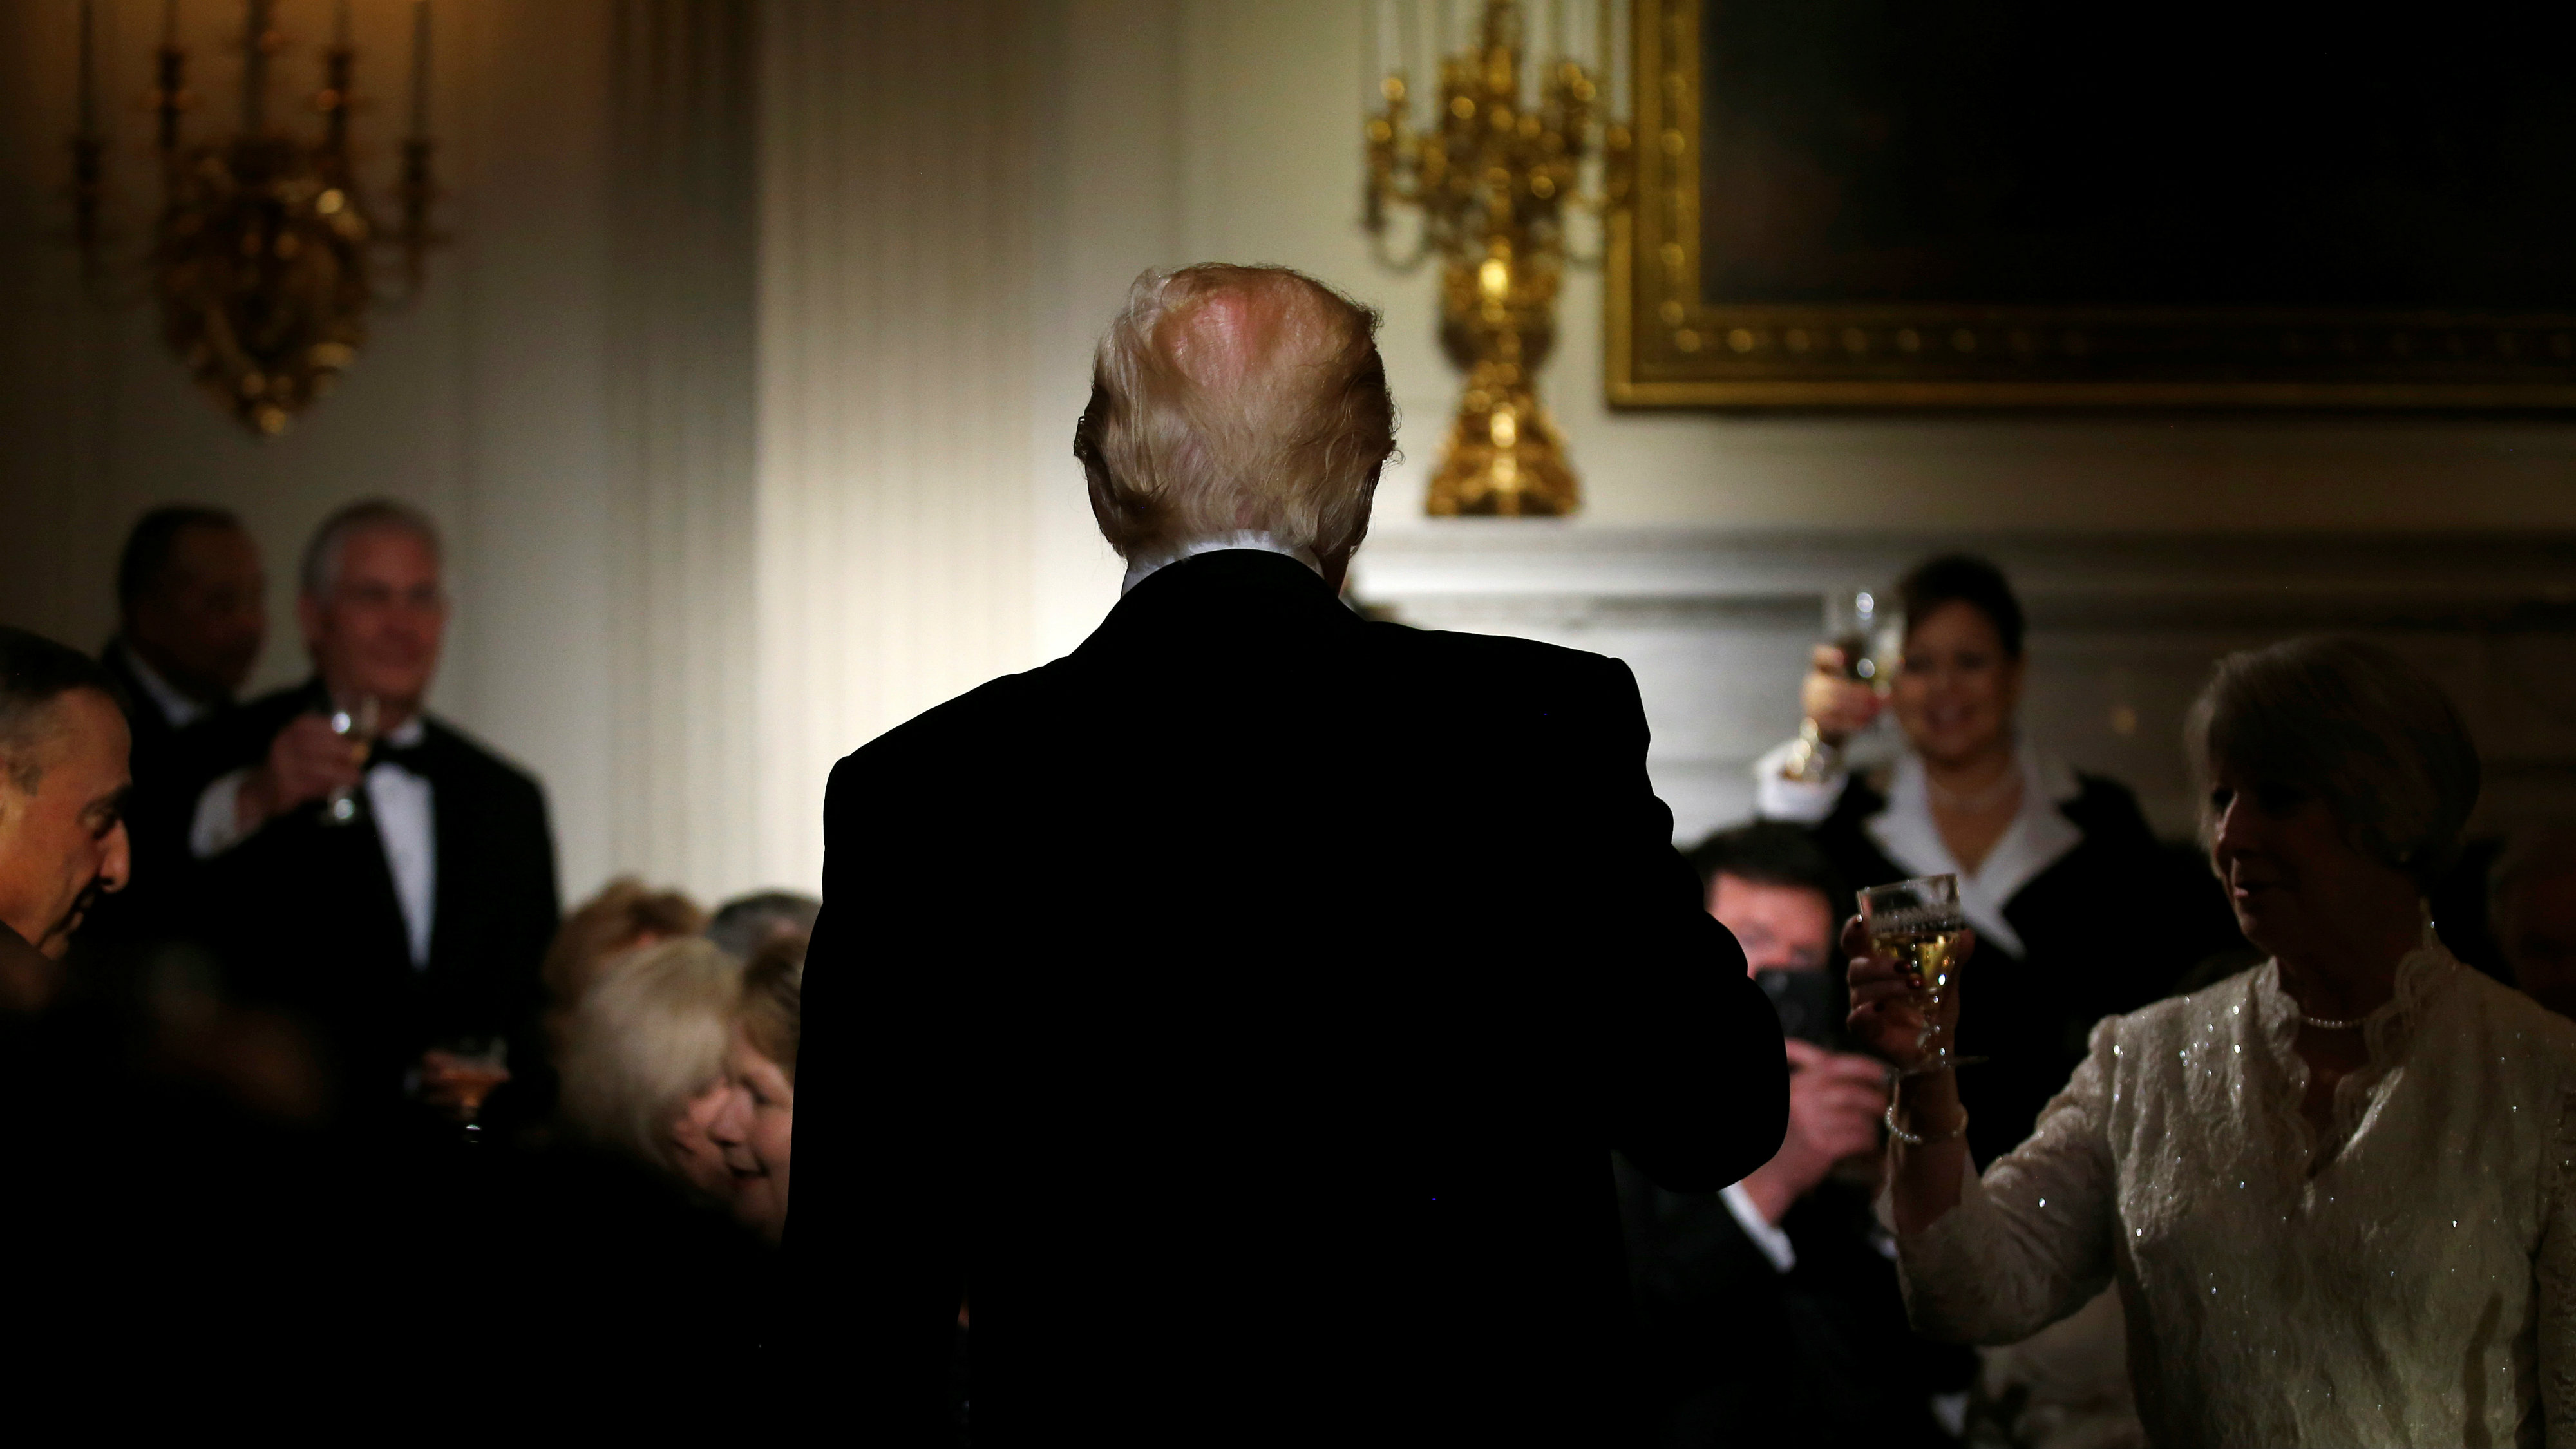 U.S. President Donald Trump stands during a toast giving by Virginia Governor Terry McAuliffe during the Governor's Dinner in the State Dining Room at the White House in Washington, U.S., February 26, 2017. REUTERS/Joshua Roberts